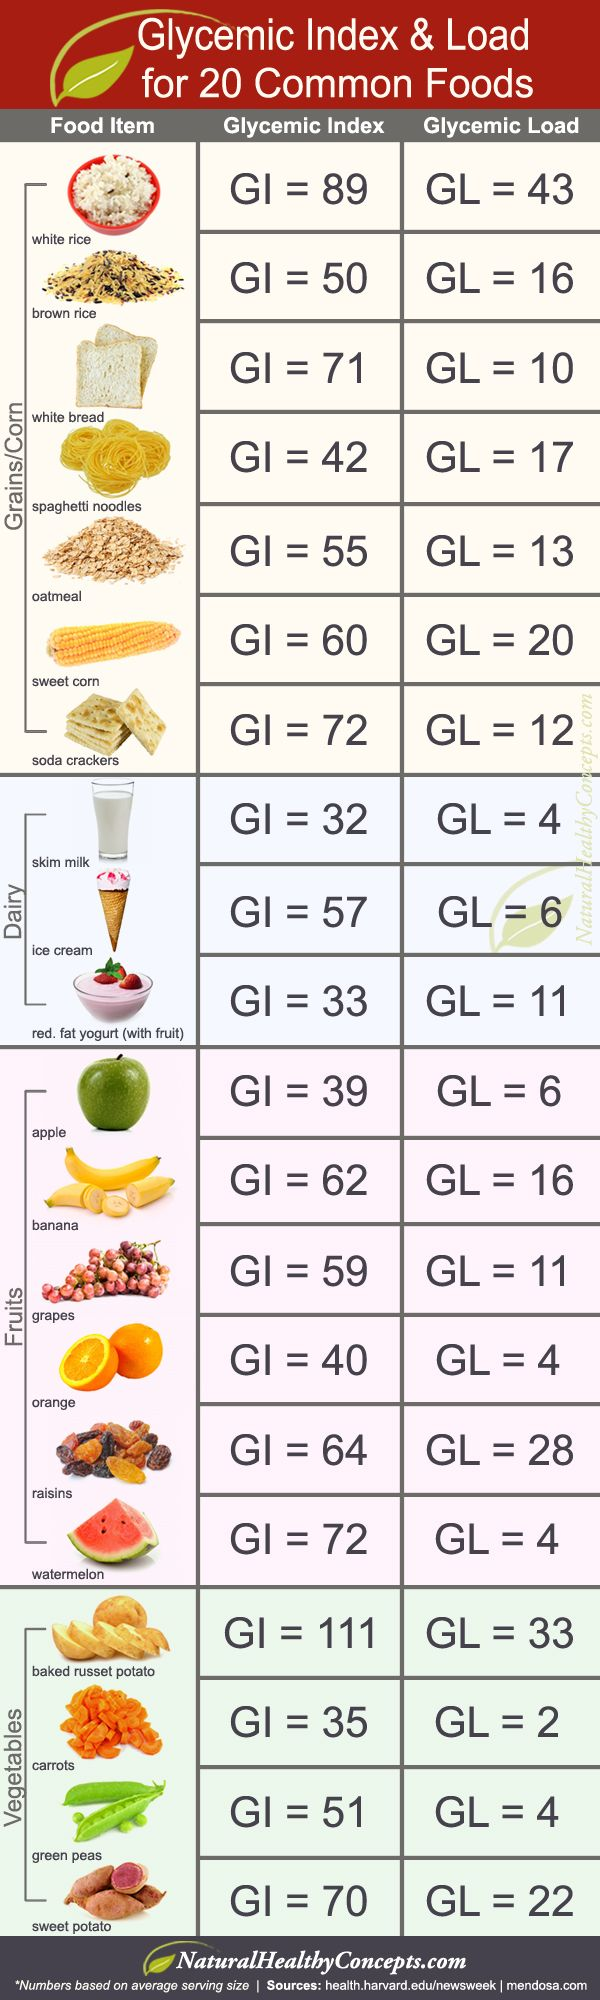 Glycemic Index and Glycemic Load for 20 common foods